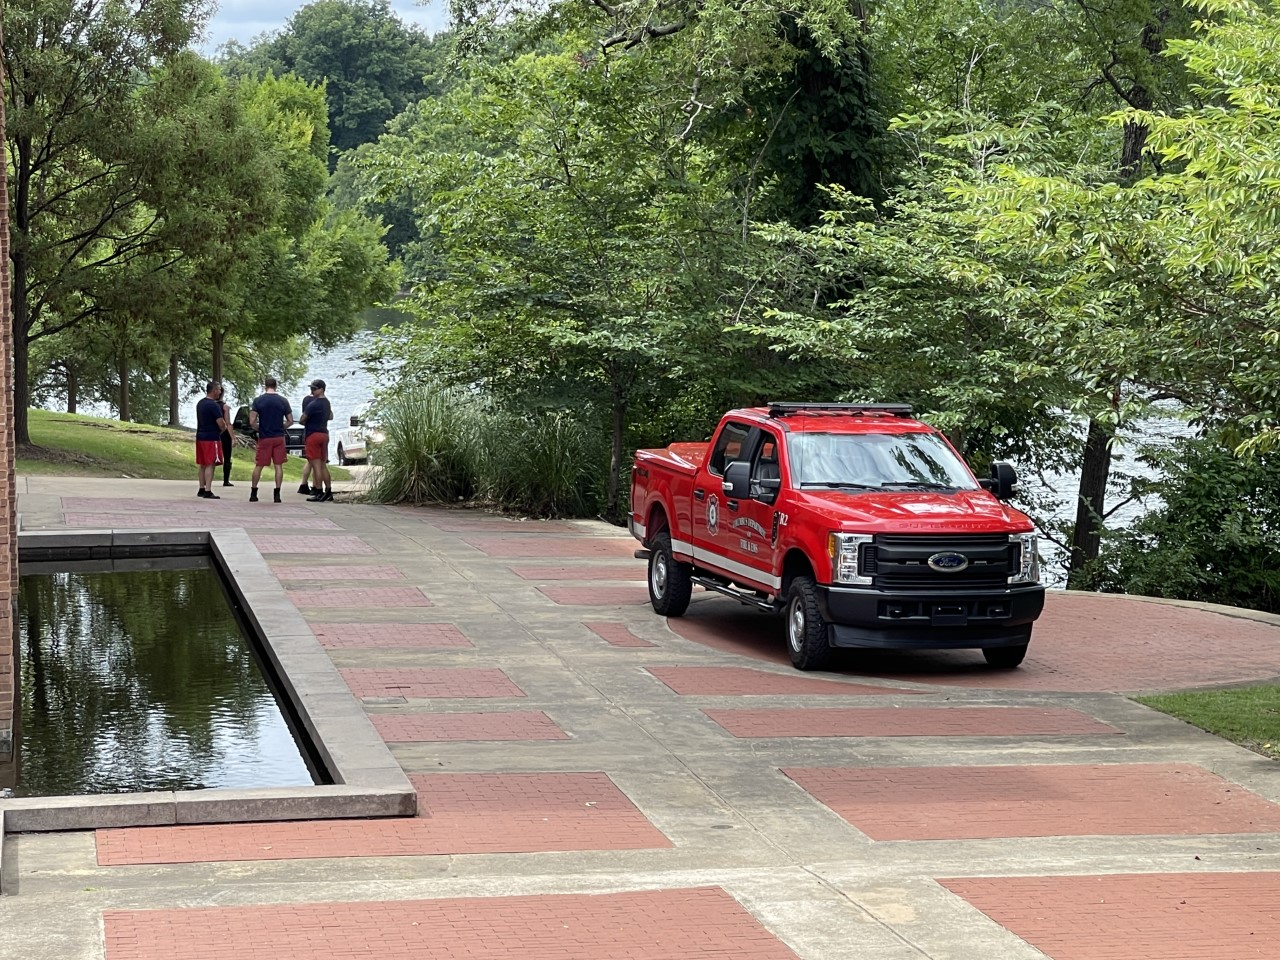 Search for possible drowning victim continues on Chattahoochee River